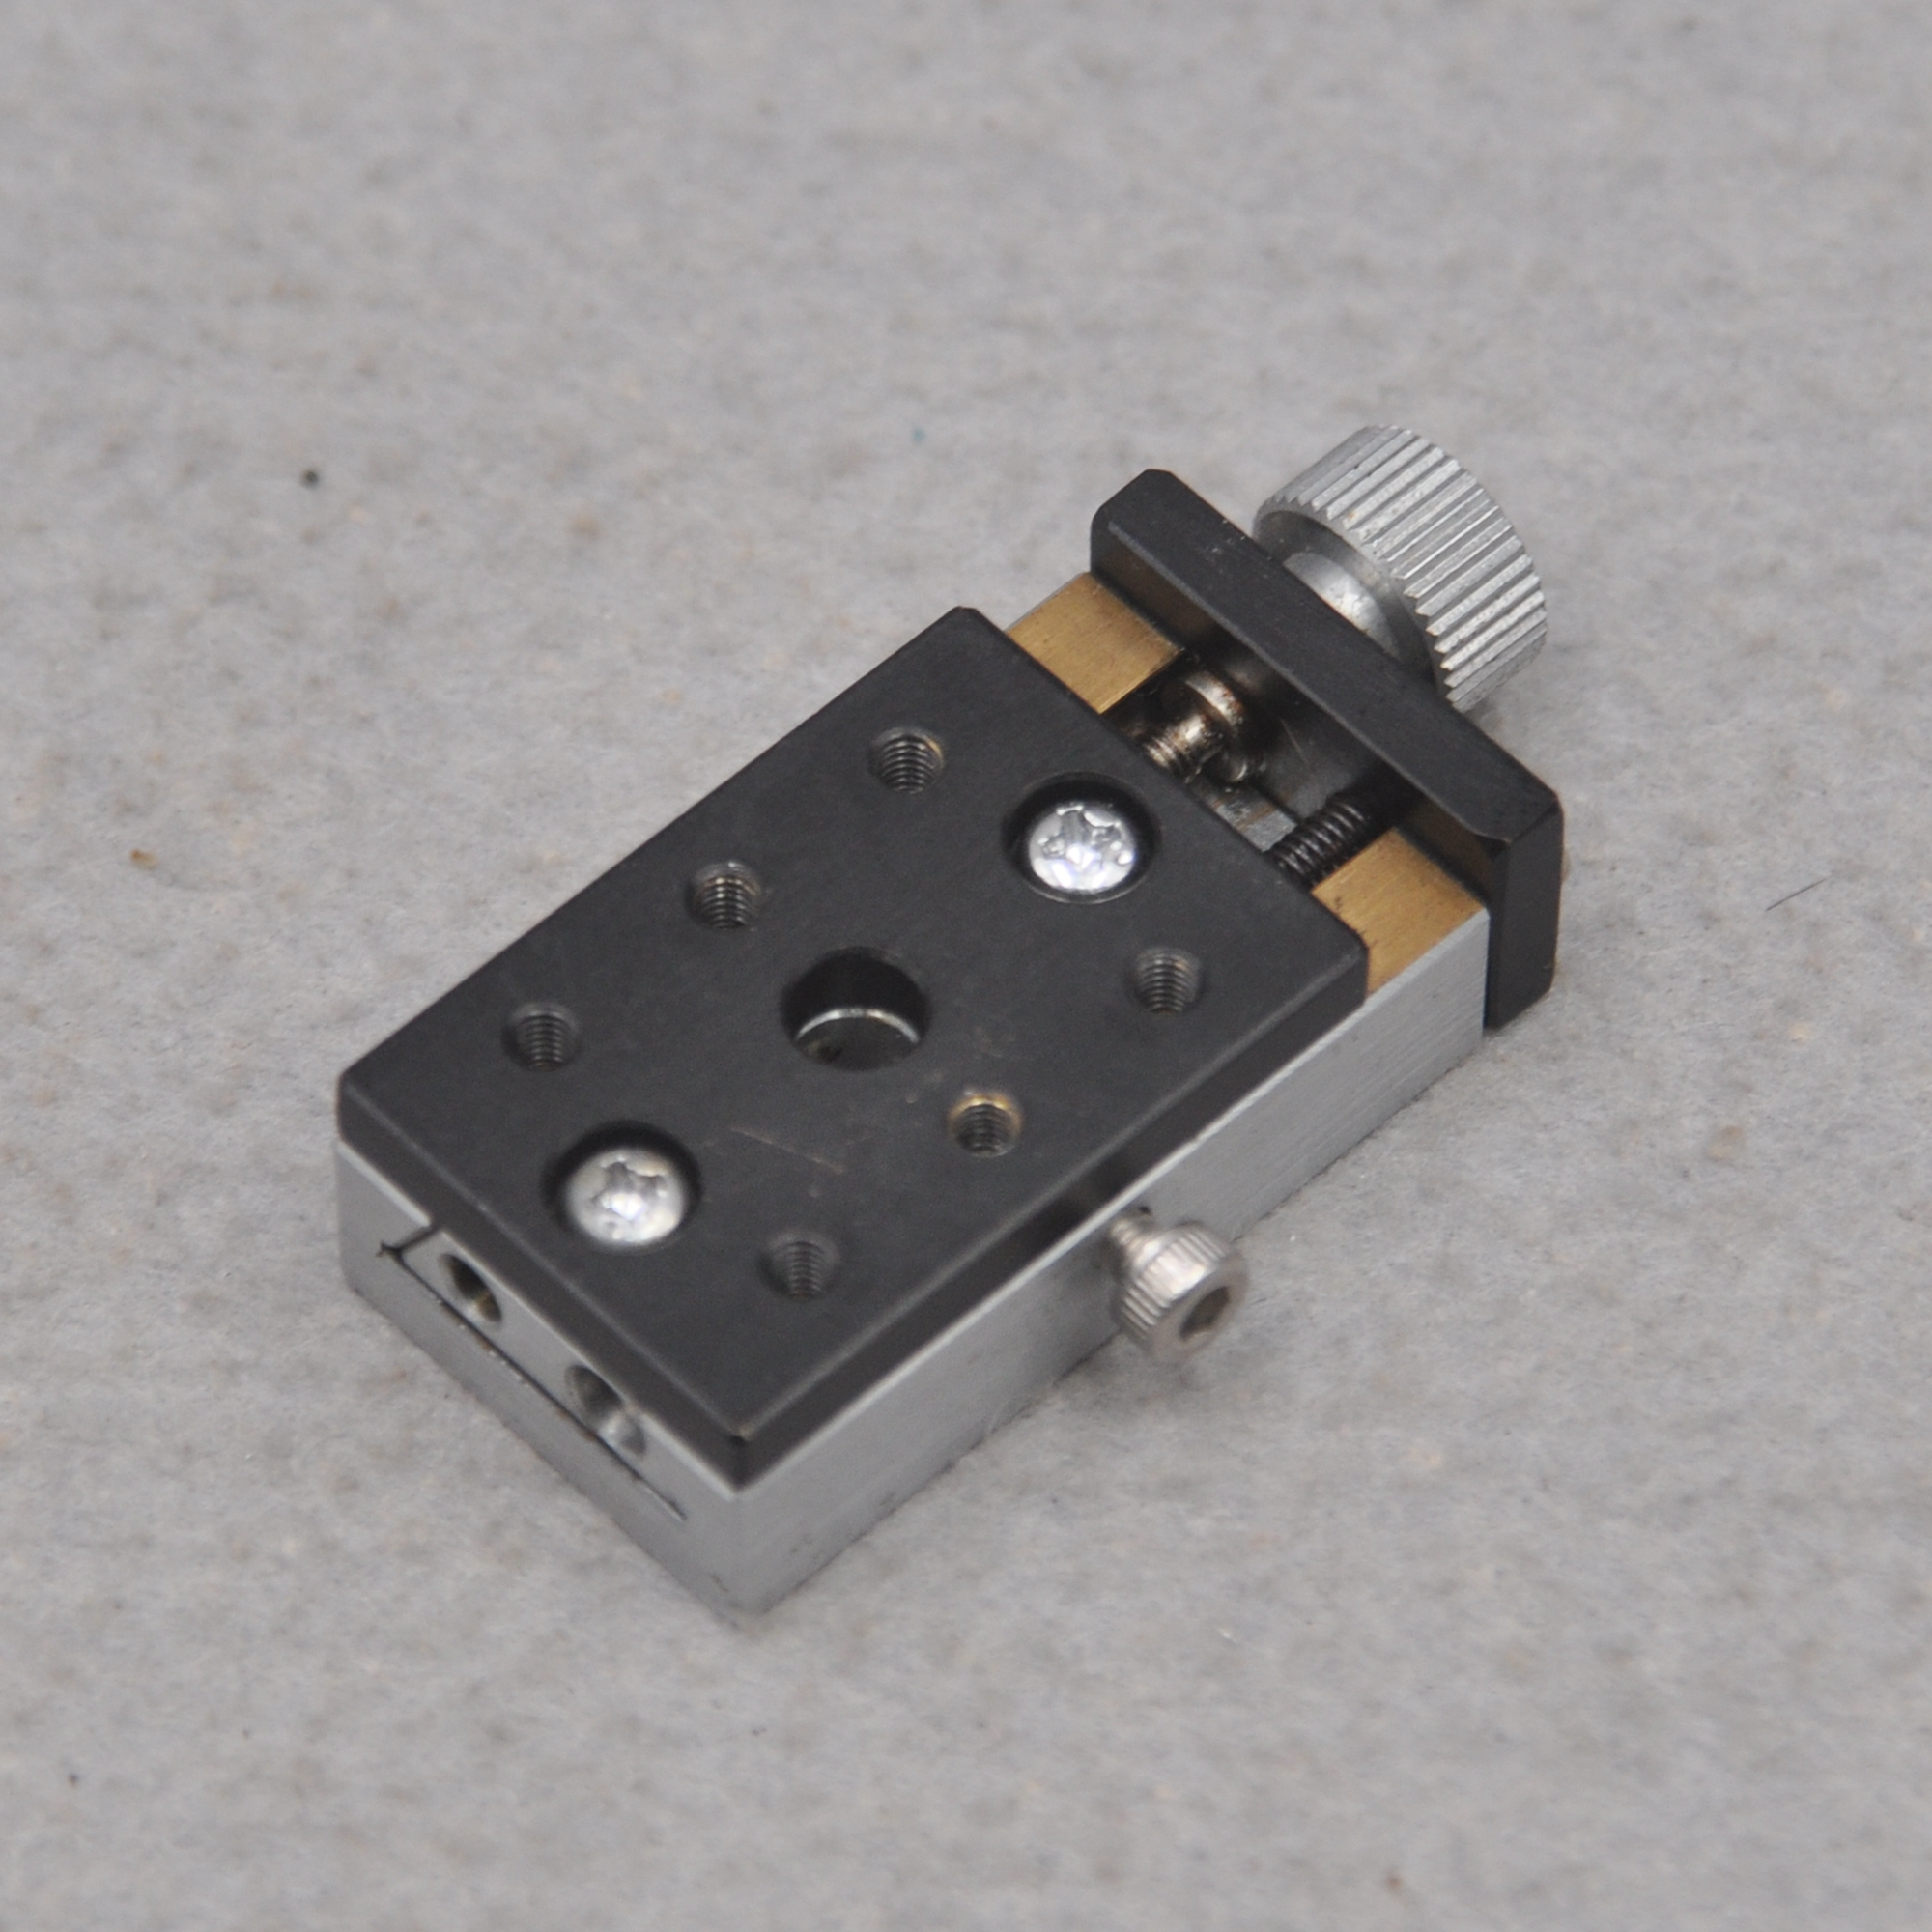 X Axis 24 * 35mm Sigma Manual Dovetail Small Optical Y Axis Precision Cross Lift Fine Adjustment Displacement Slide